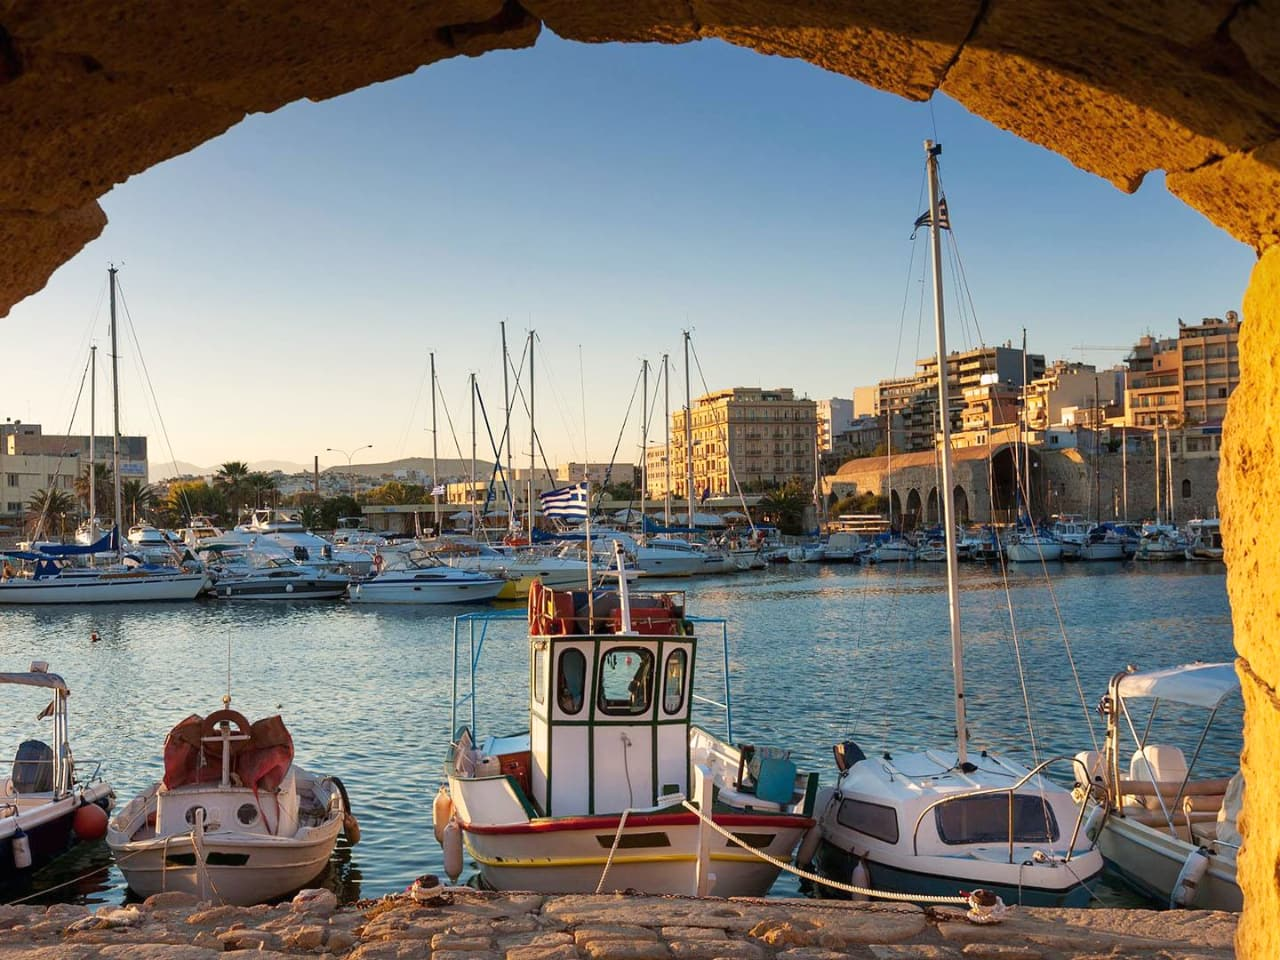 heraklion old port, Heraklion travel guide, iraklion travel guide, heraklion things to do, heraklion activities, history of heraklion, museums heraklion, restaurants iraklion, events heraklion, travel tips heraklion, heraklion tours, crete travel, the crete you are looking for